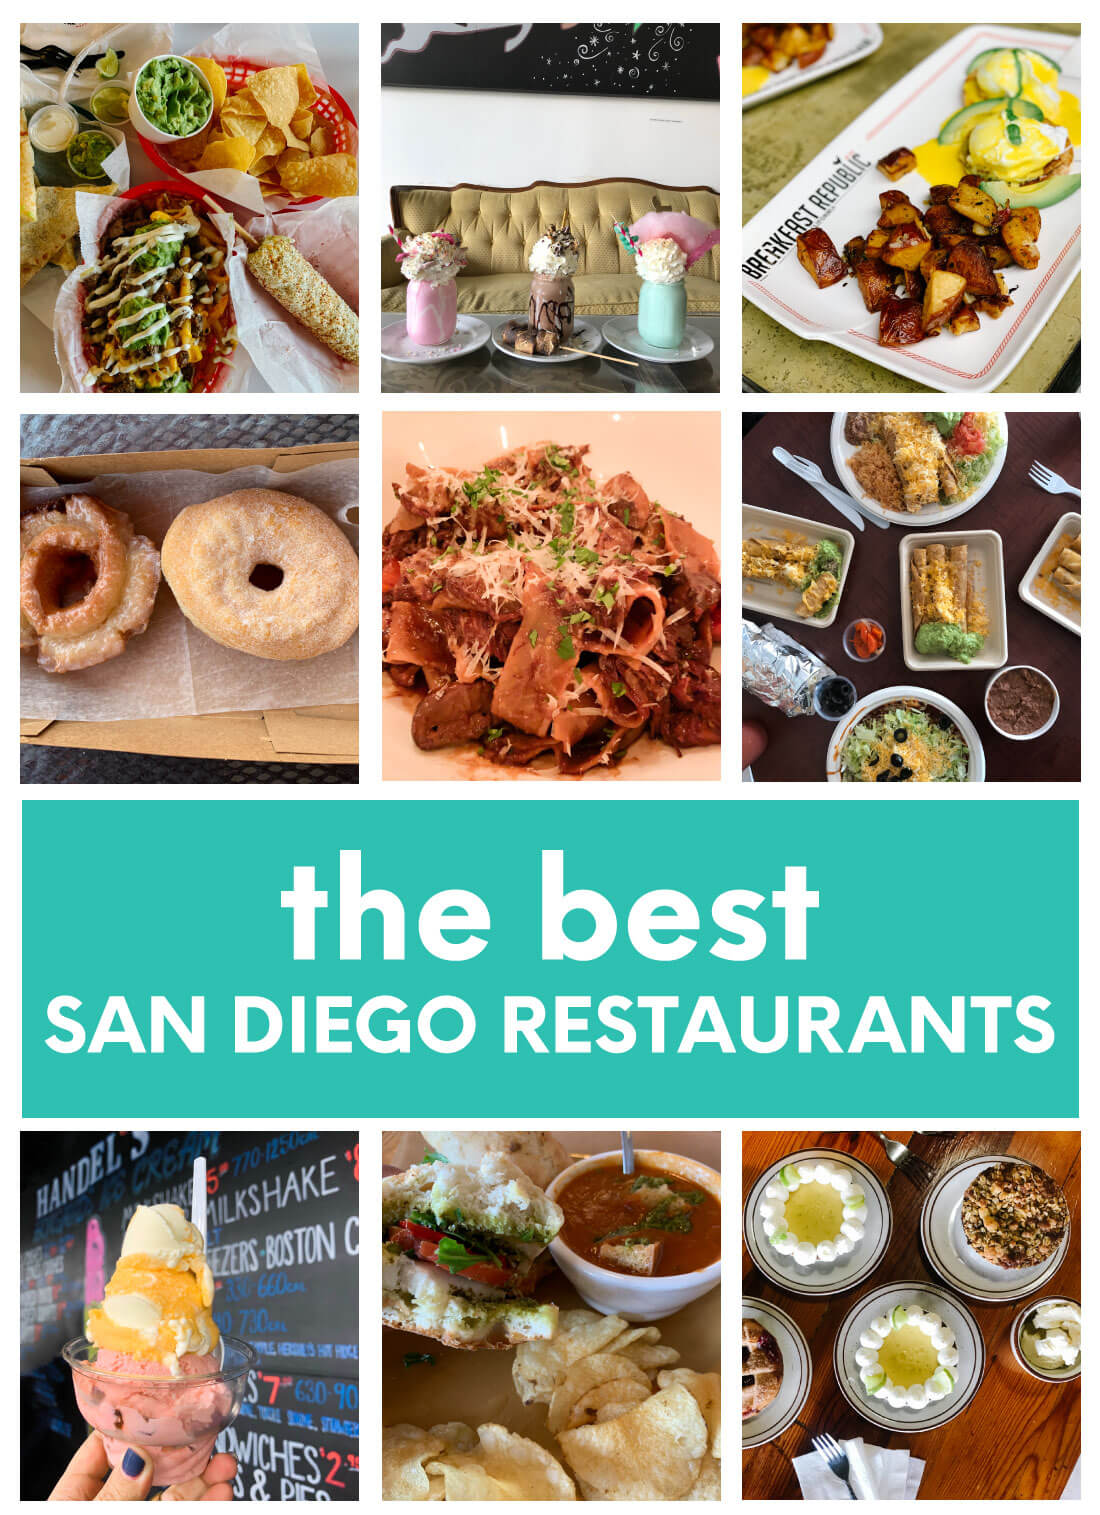 Collage of the Best San Diego Restaurants